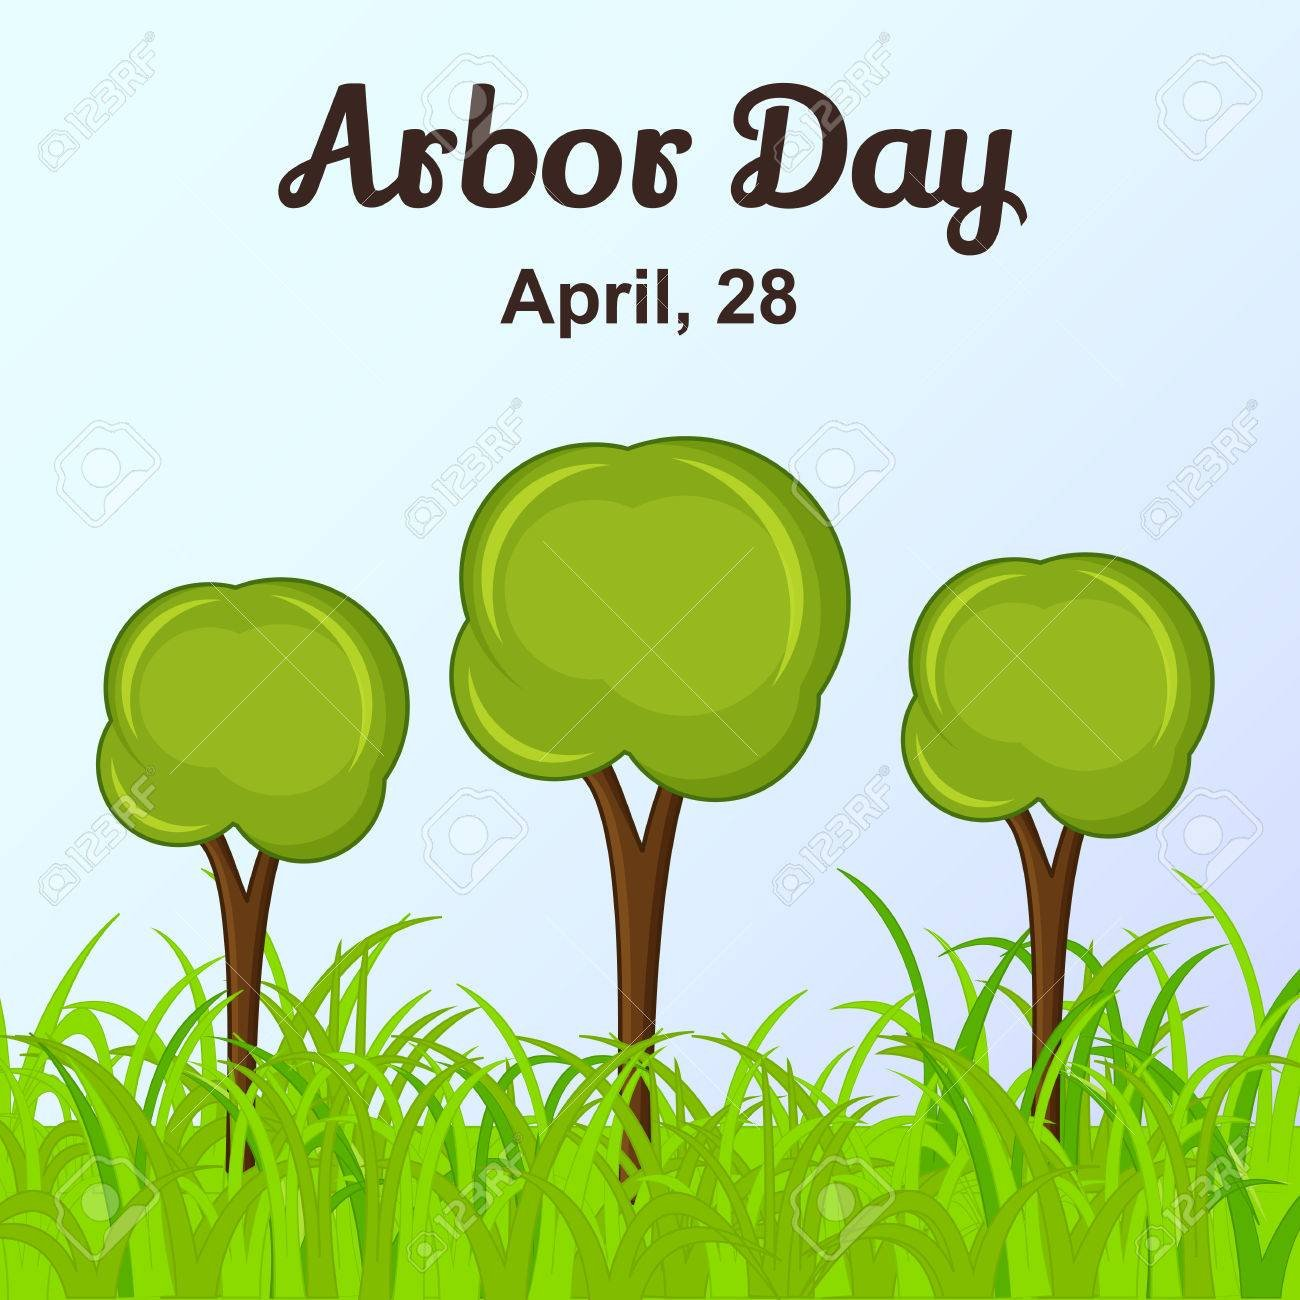 Arbor Day Background With Trees In Cartoon Style Vector 1300x1300